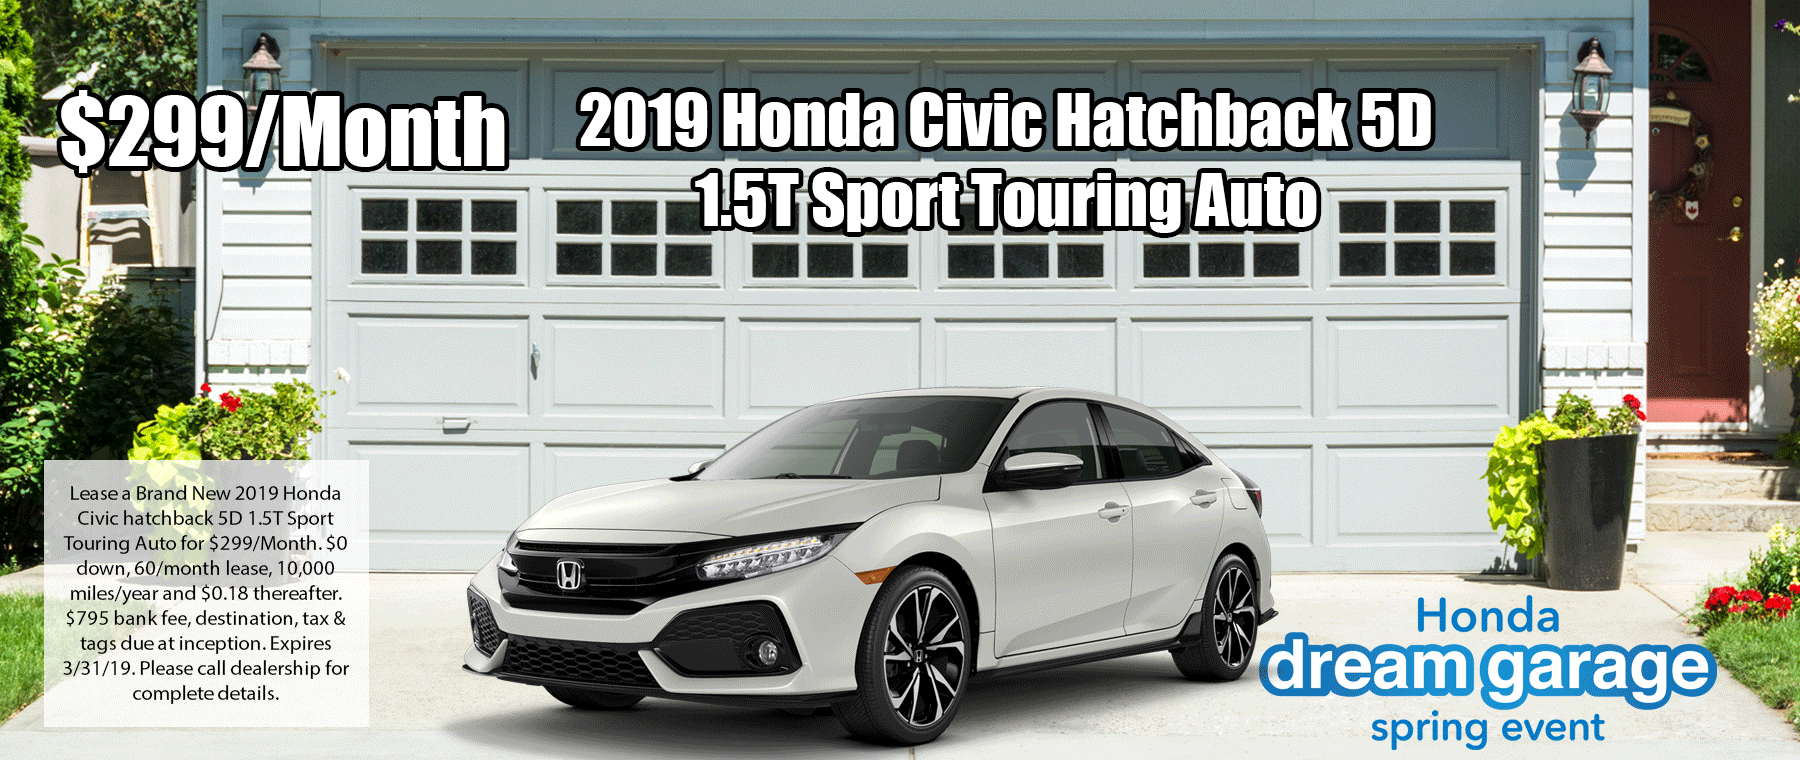 Civic-Hatchback-Sport-Touring